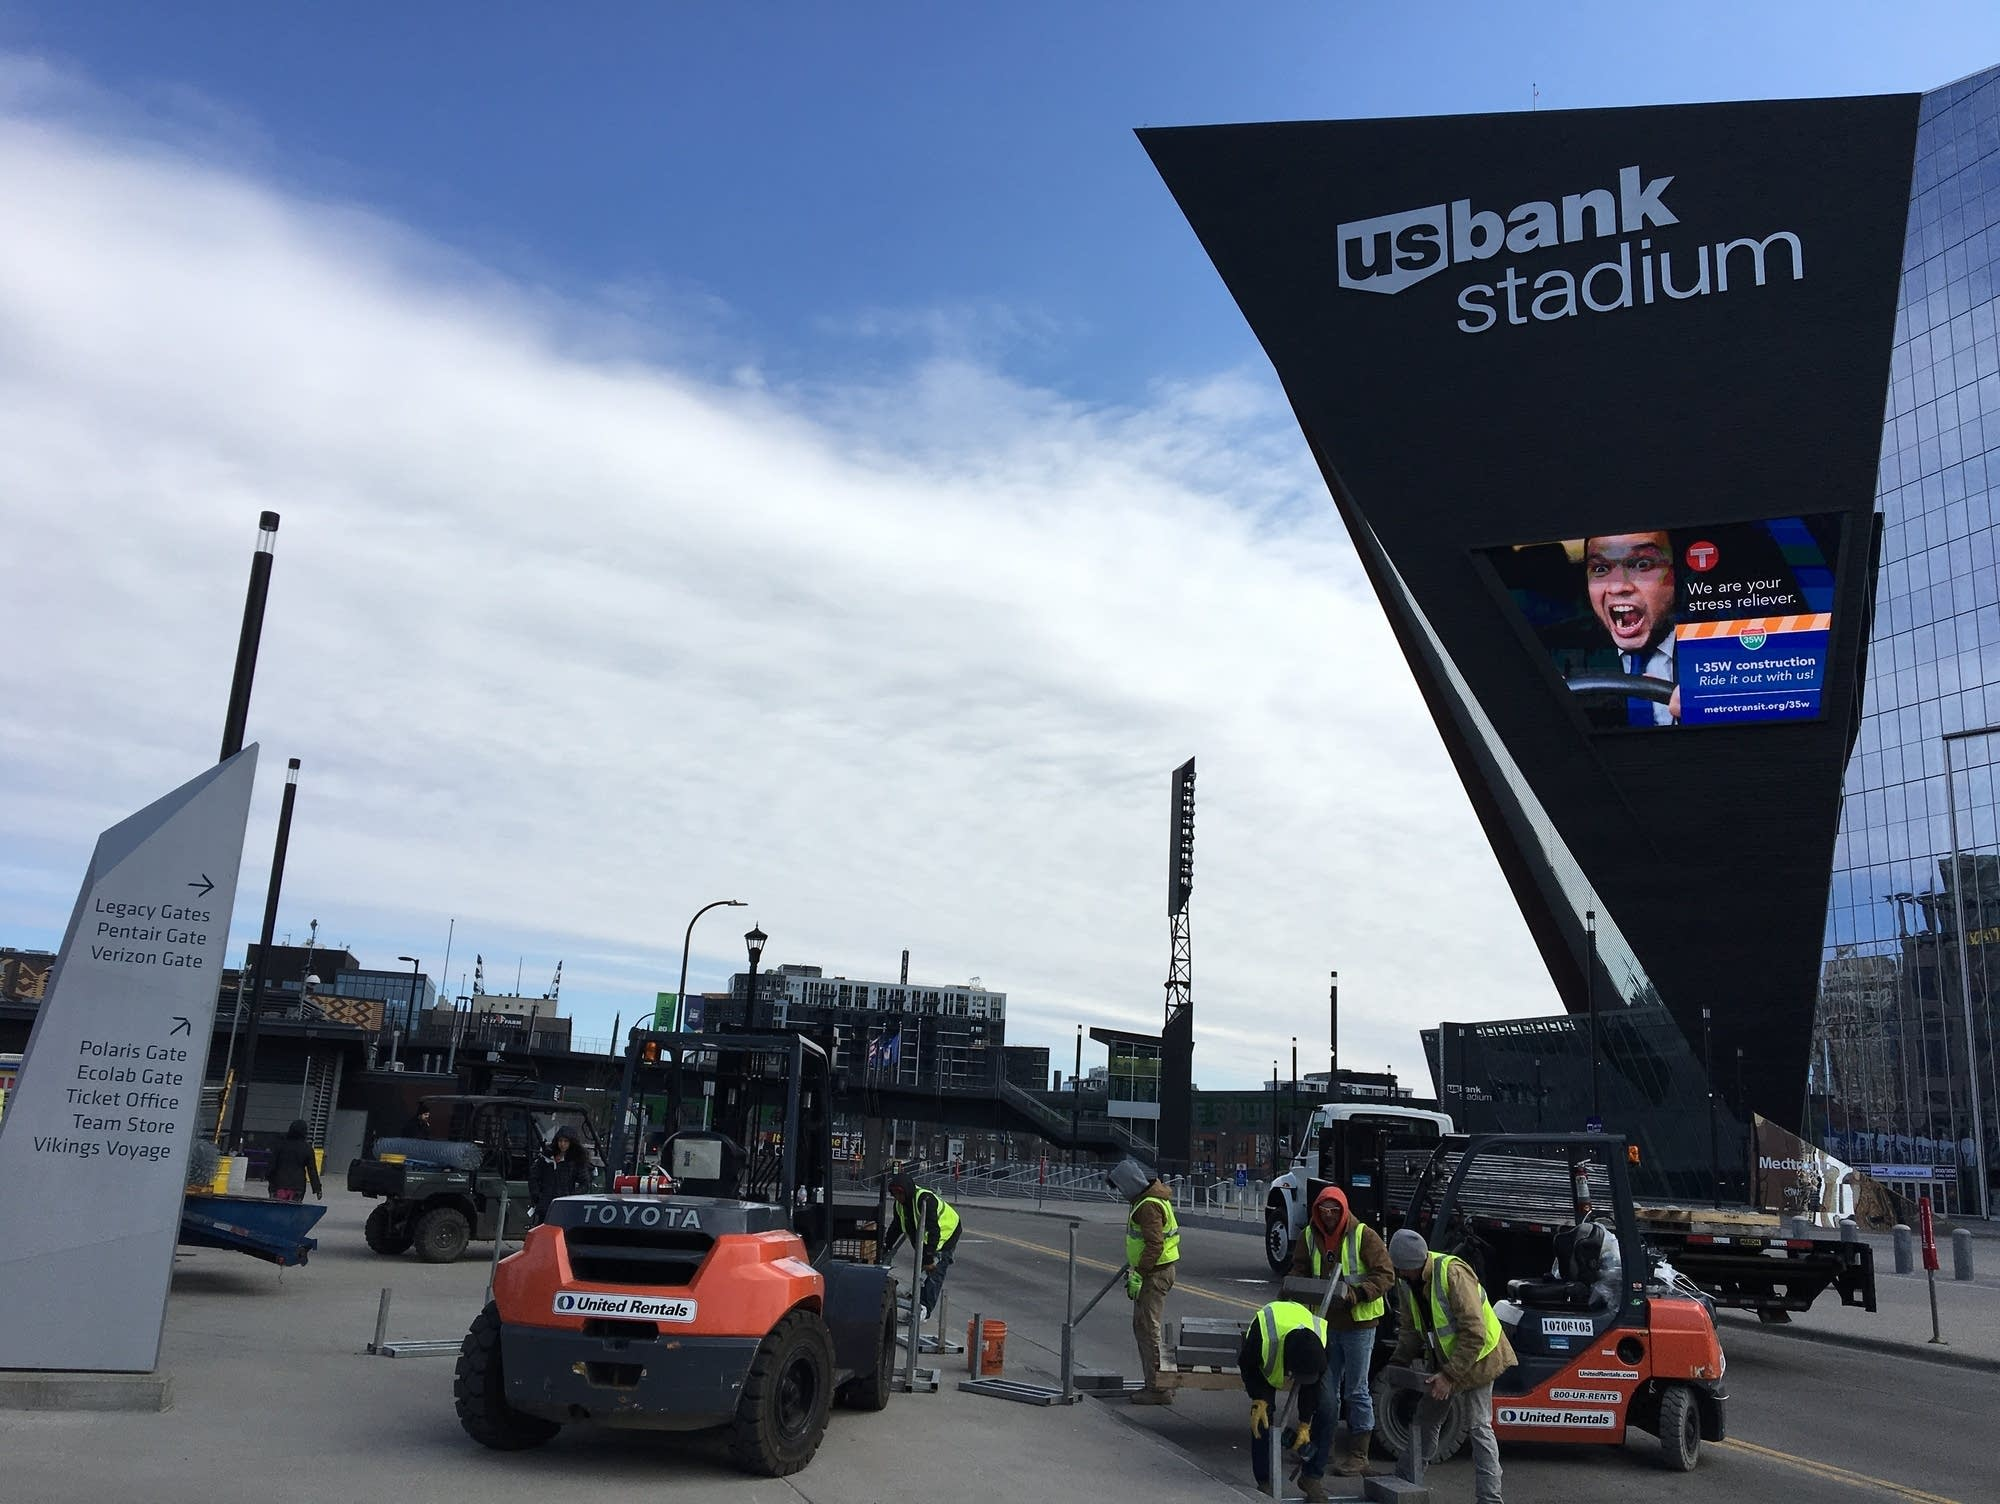 Workers across the street from U.S. Bank Stadium install chain link fence.